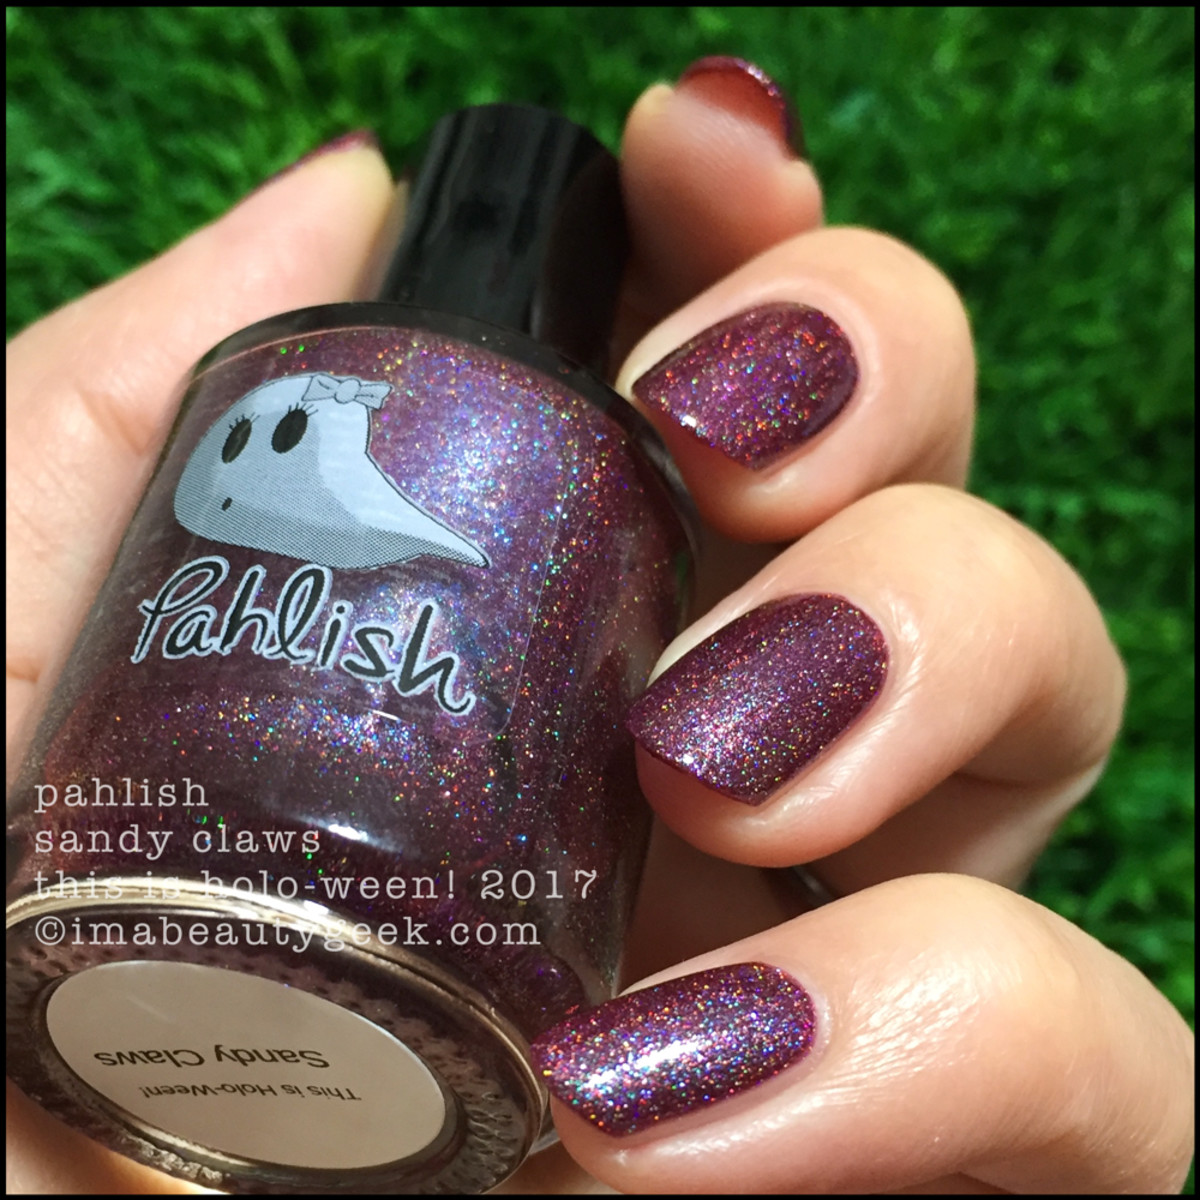 Pahlish Sandy Claws 3 - This is Holo-ween! 2017